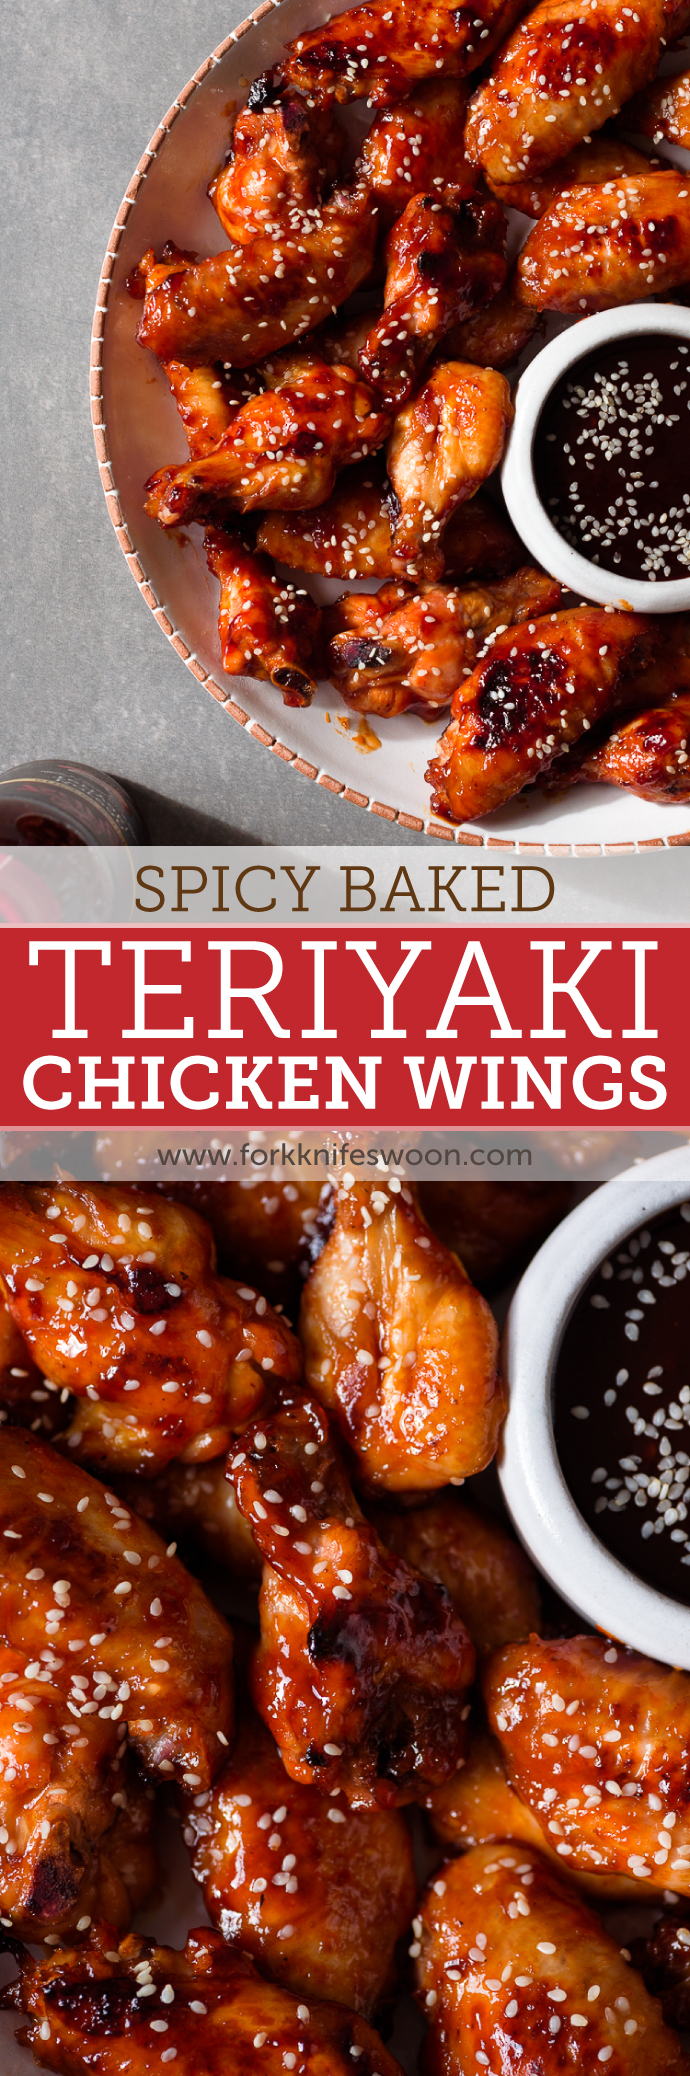 Spicy Baked Korean Teriyaki Chicken Wings: these couldn't be easier! via forkknifeswoon.com | @forkknifeswoon